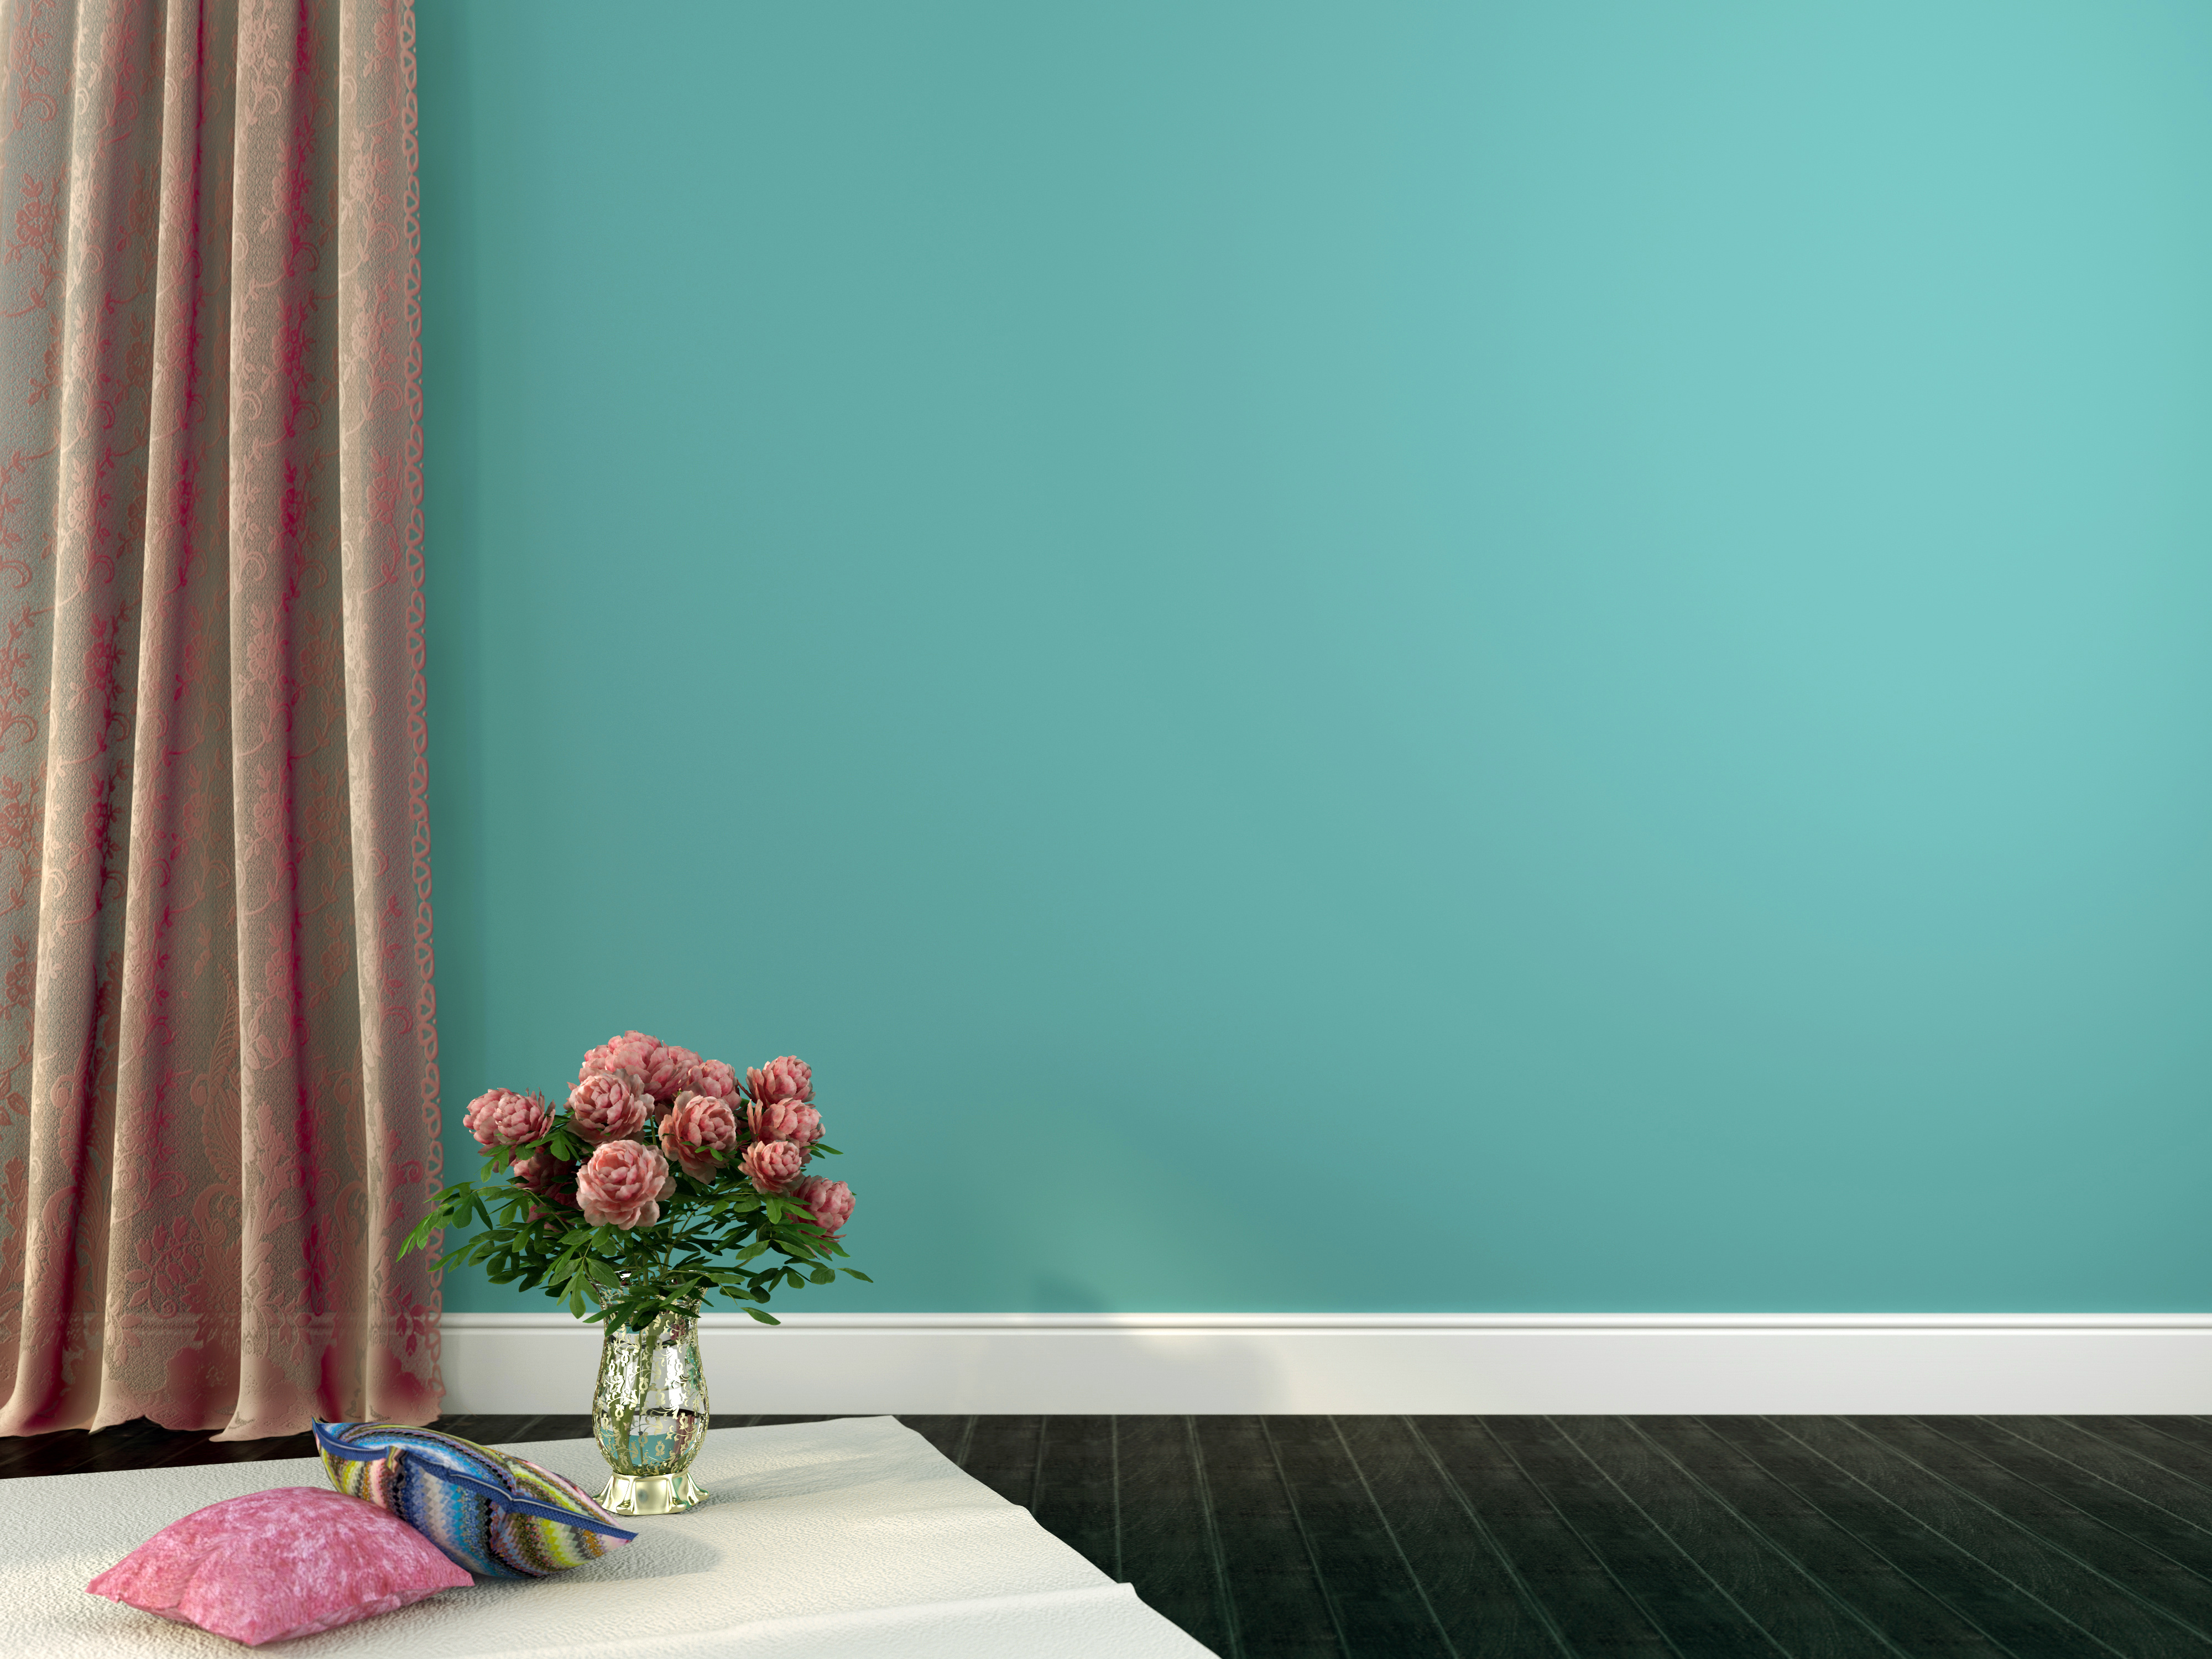 Romantic interior composition with vase of flowers and pillows on a background of blue walls and curtains of guipure